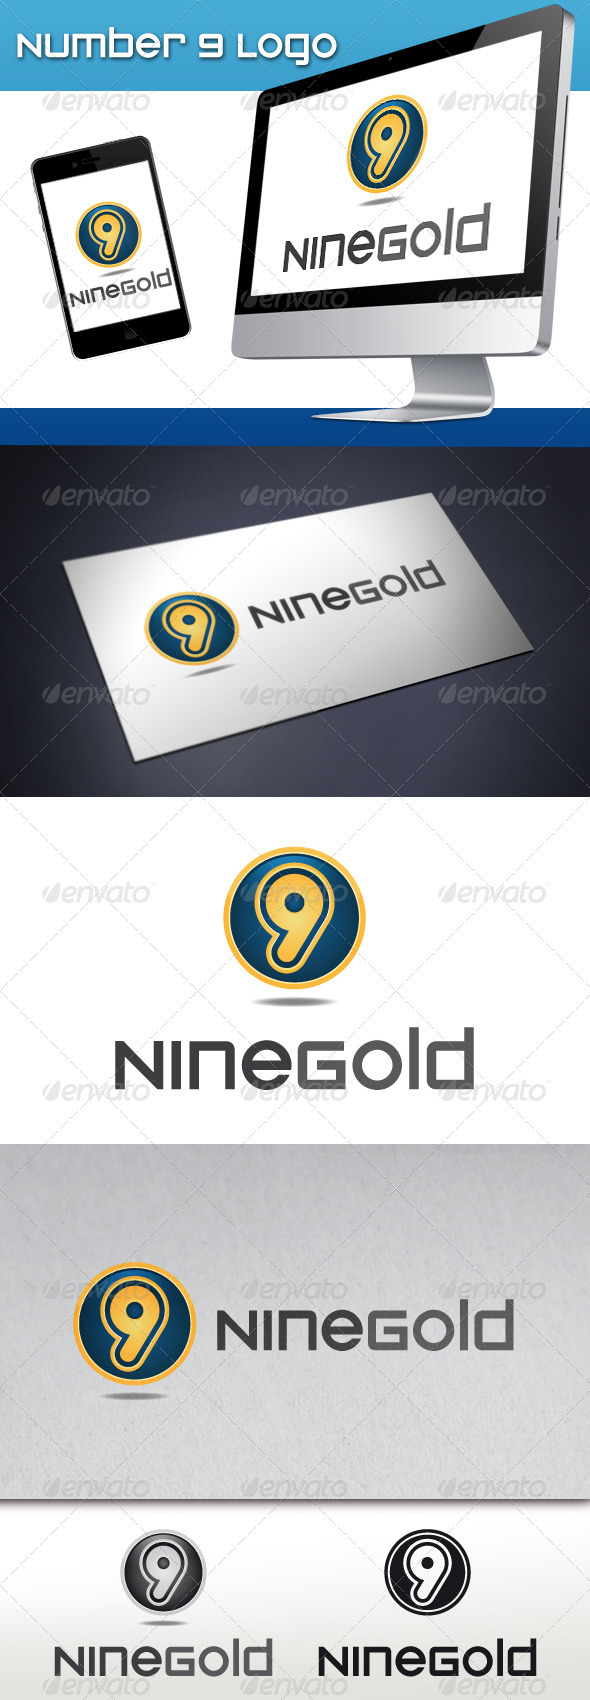 GraphicRiver Number 9 Logo 3481693